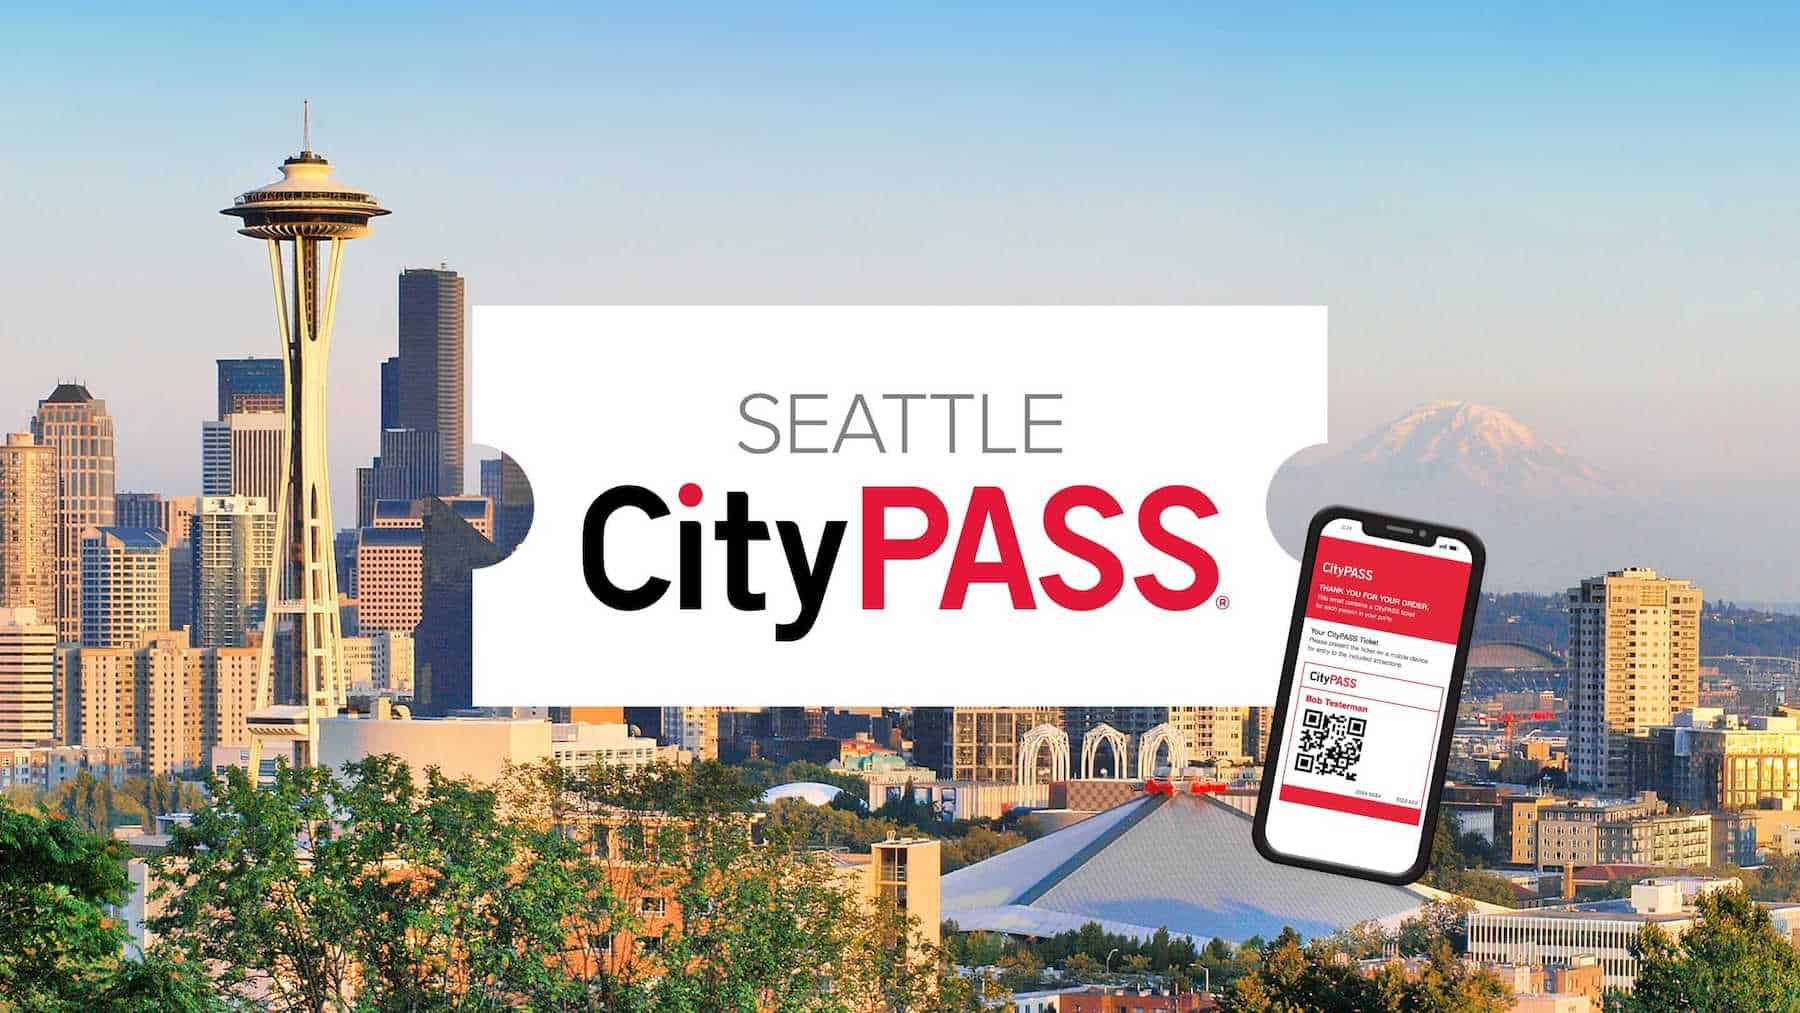 CityPass, Seattle